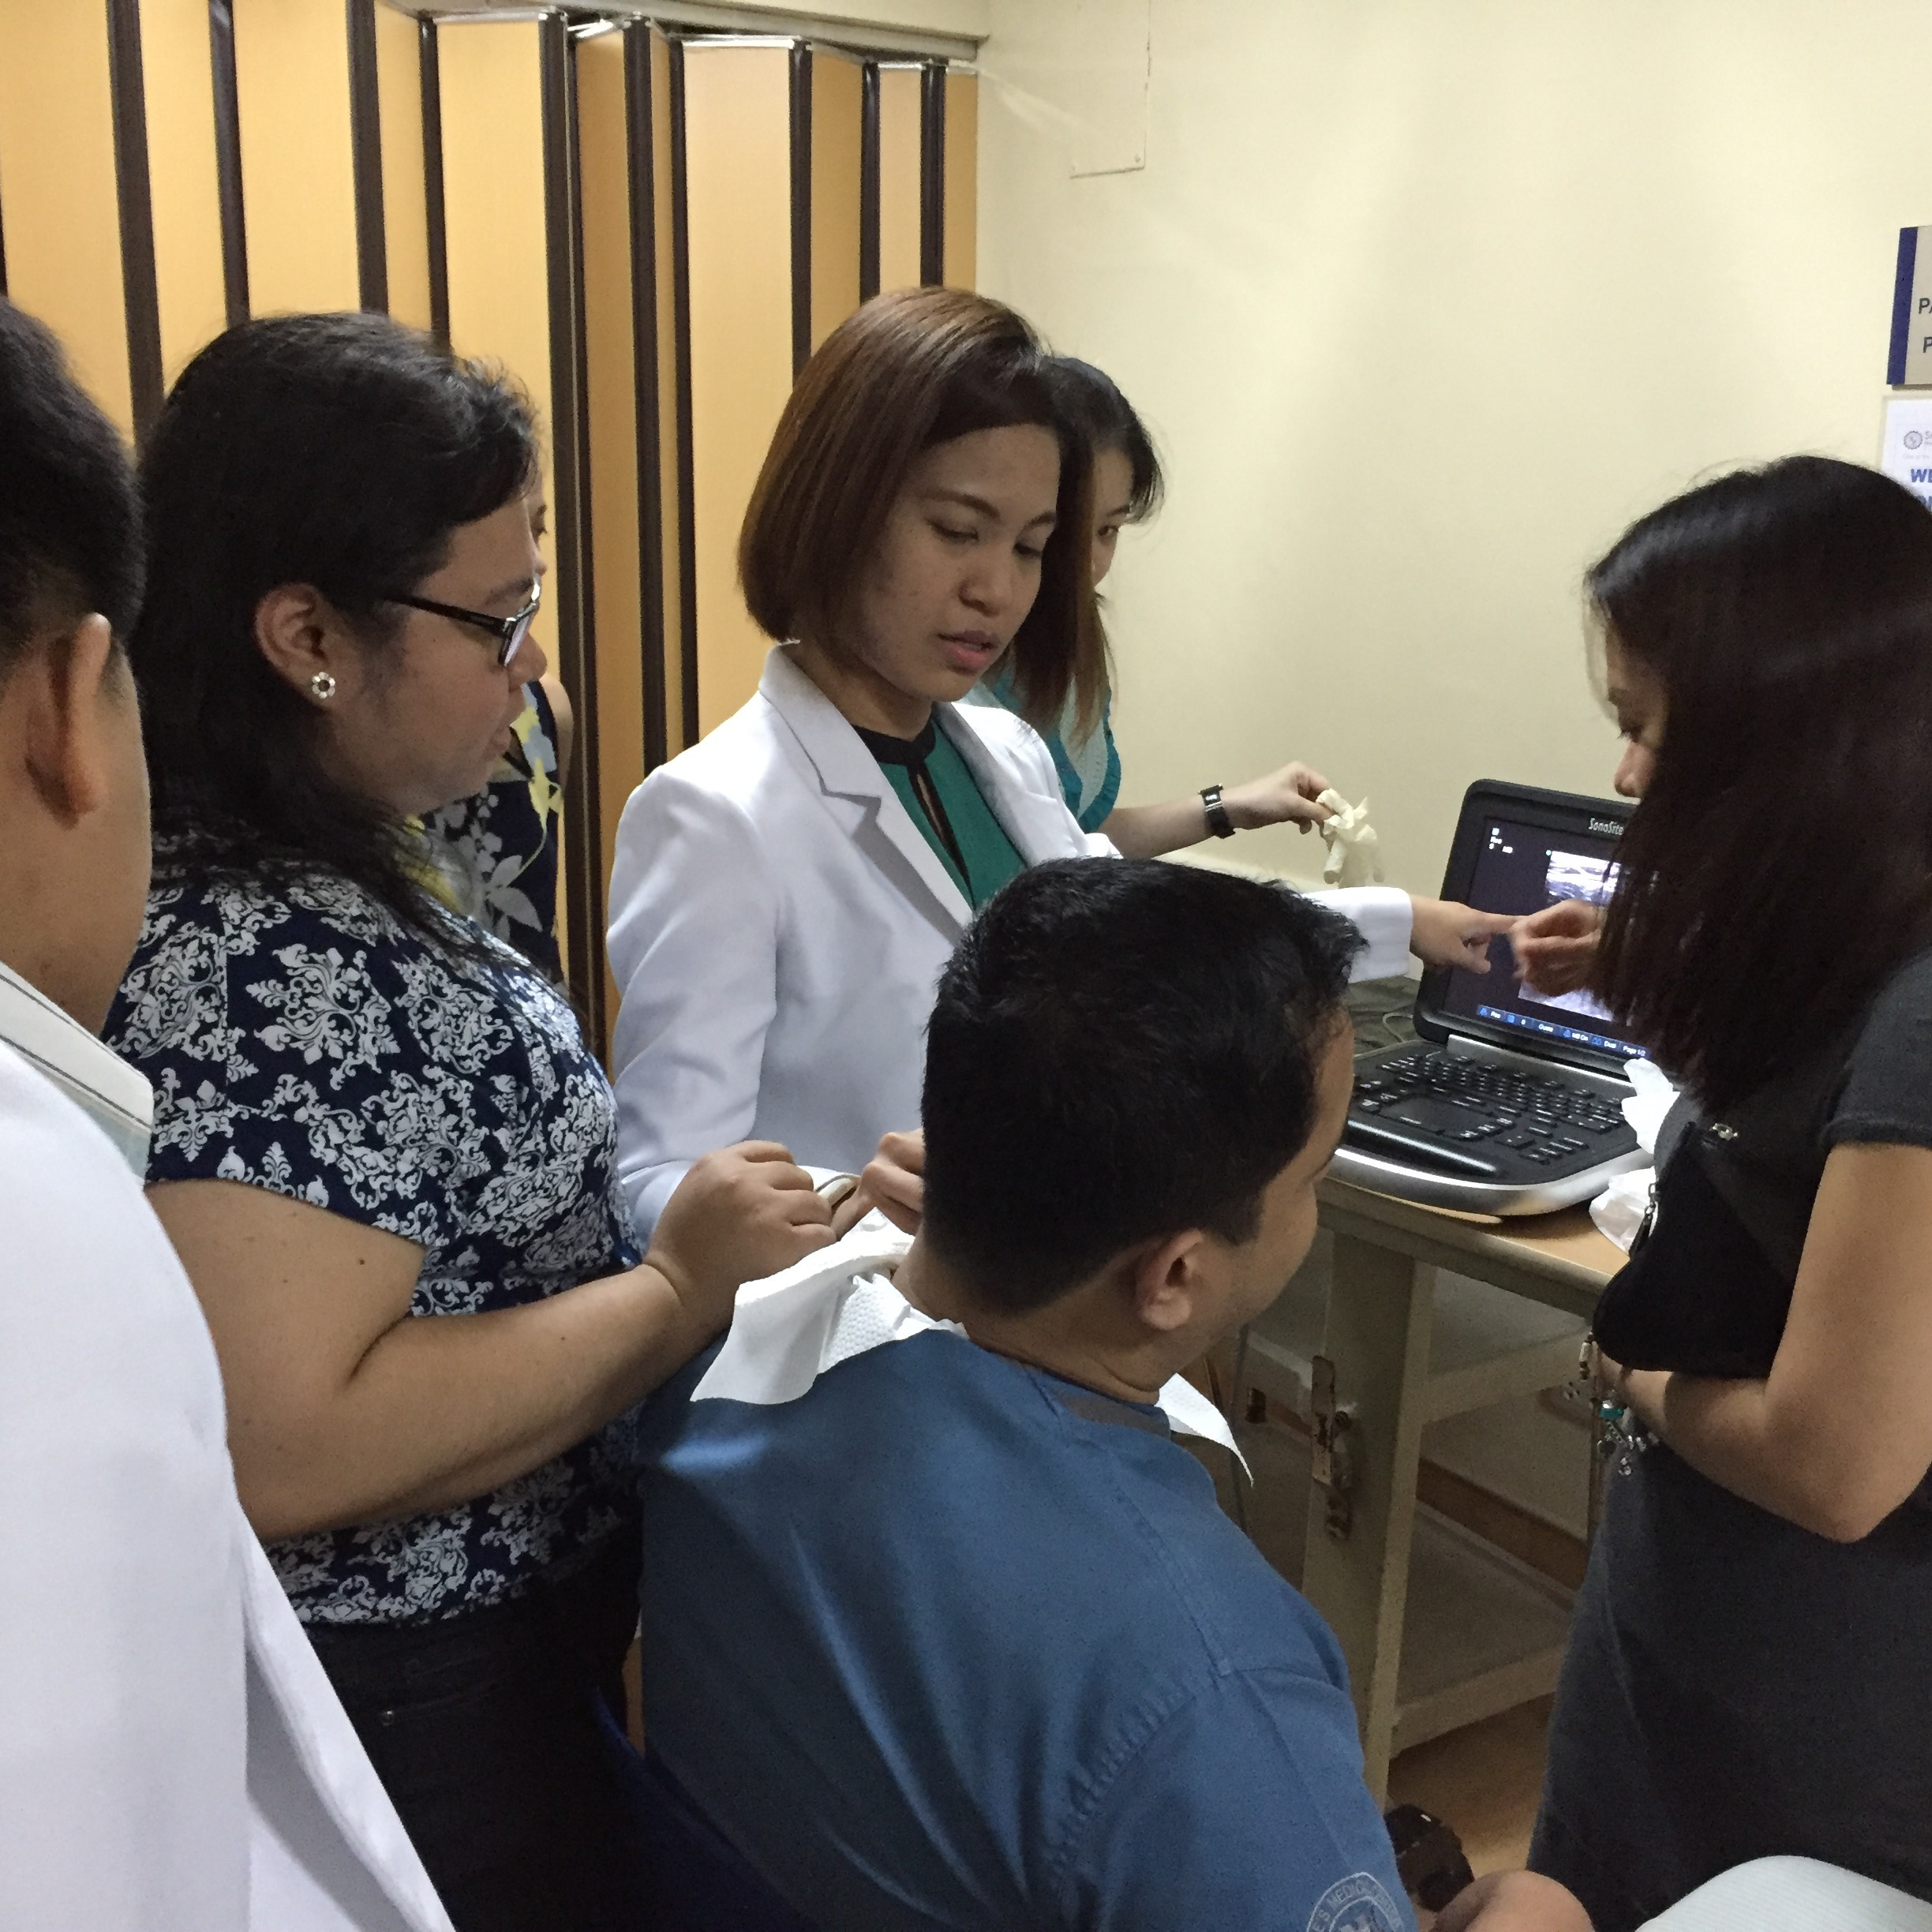 Dr. Robinson volunteered her time and expertise as a visiting physician at St. Luke's Medical Center – Quezon City (SLMC-QC), spending time with their Emergency Department residents and staff to teach instructive and hands-on sessions, and accompany resid